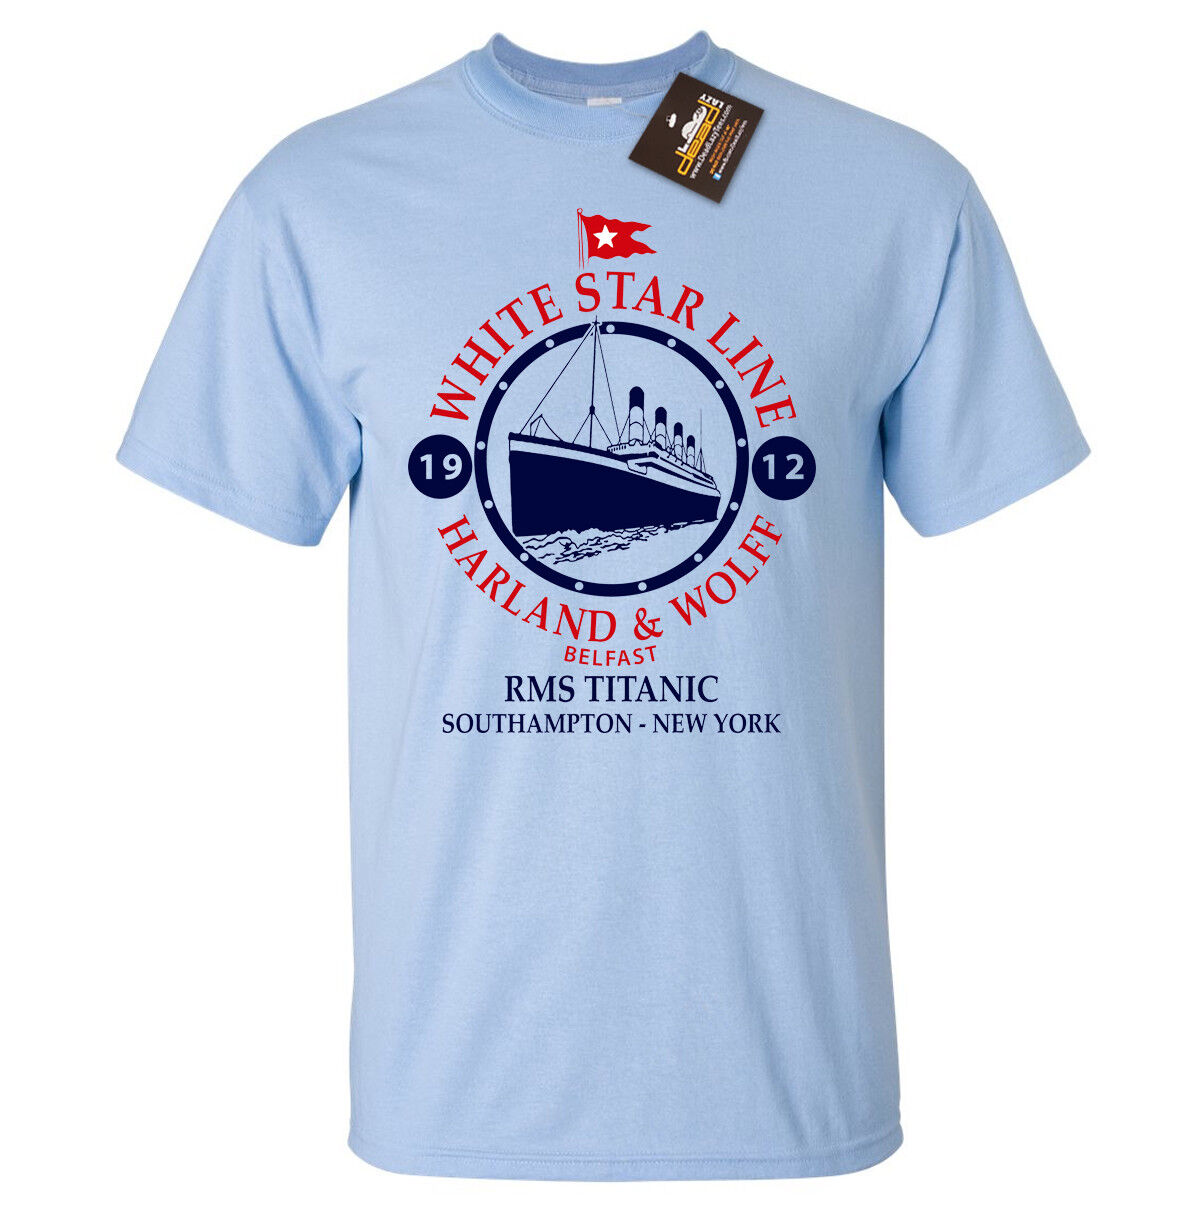 e76a21bd White Star Line Titanic Inspired T Shirt Classic Film Boat Ship Sailing Tee  Funny Unisex Casual Quirky T Shirt Awesome T Shirts For Sale From ...